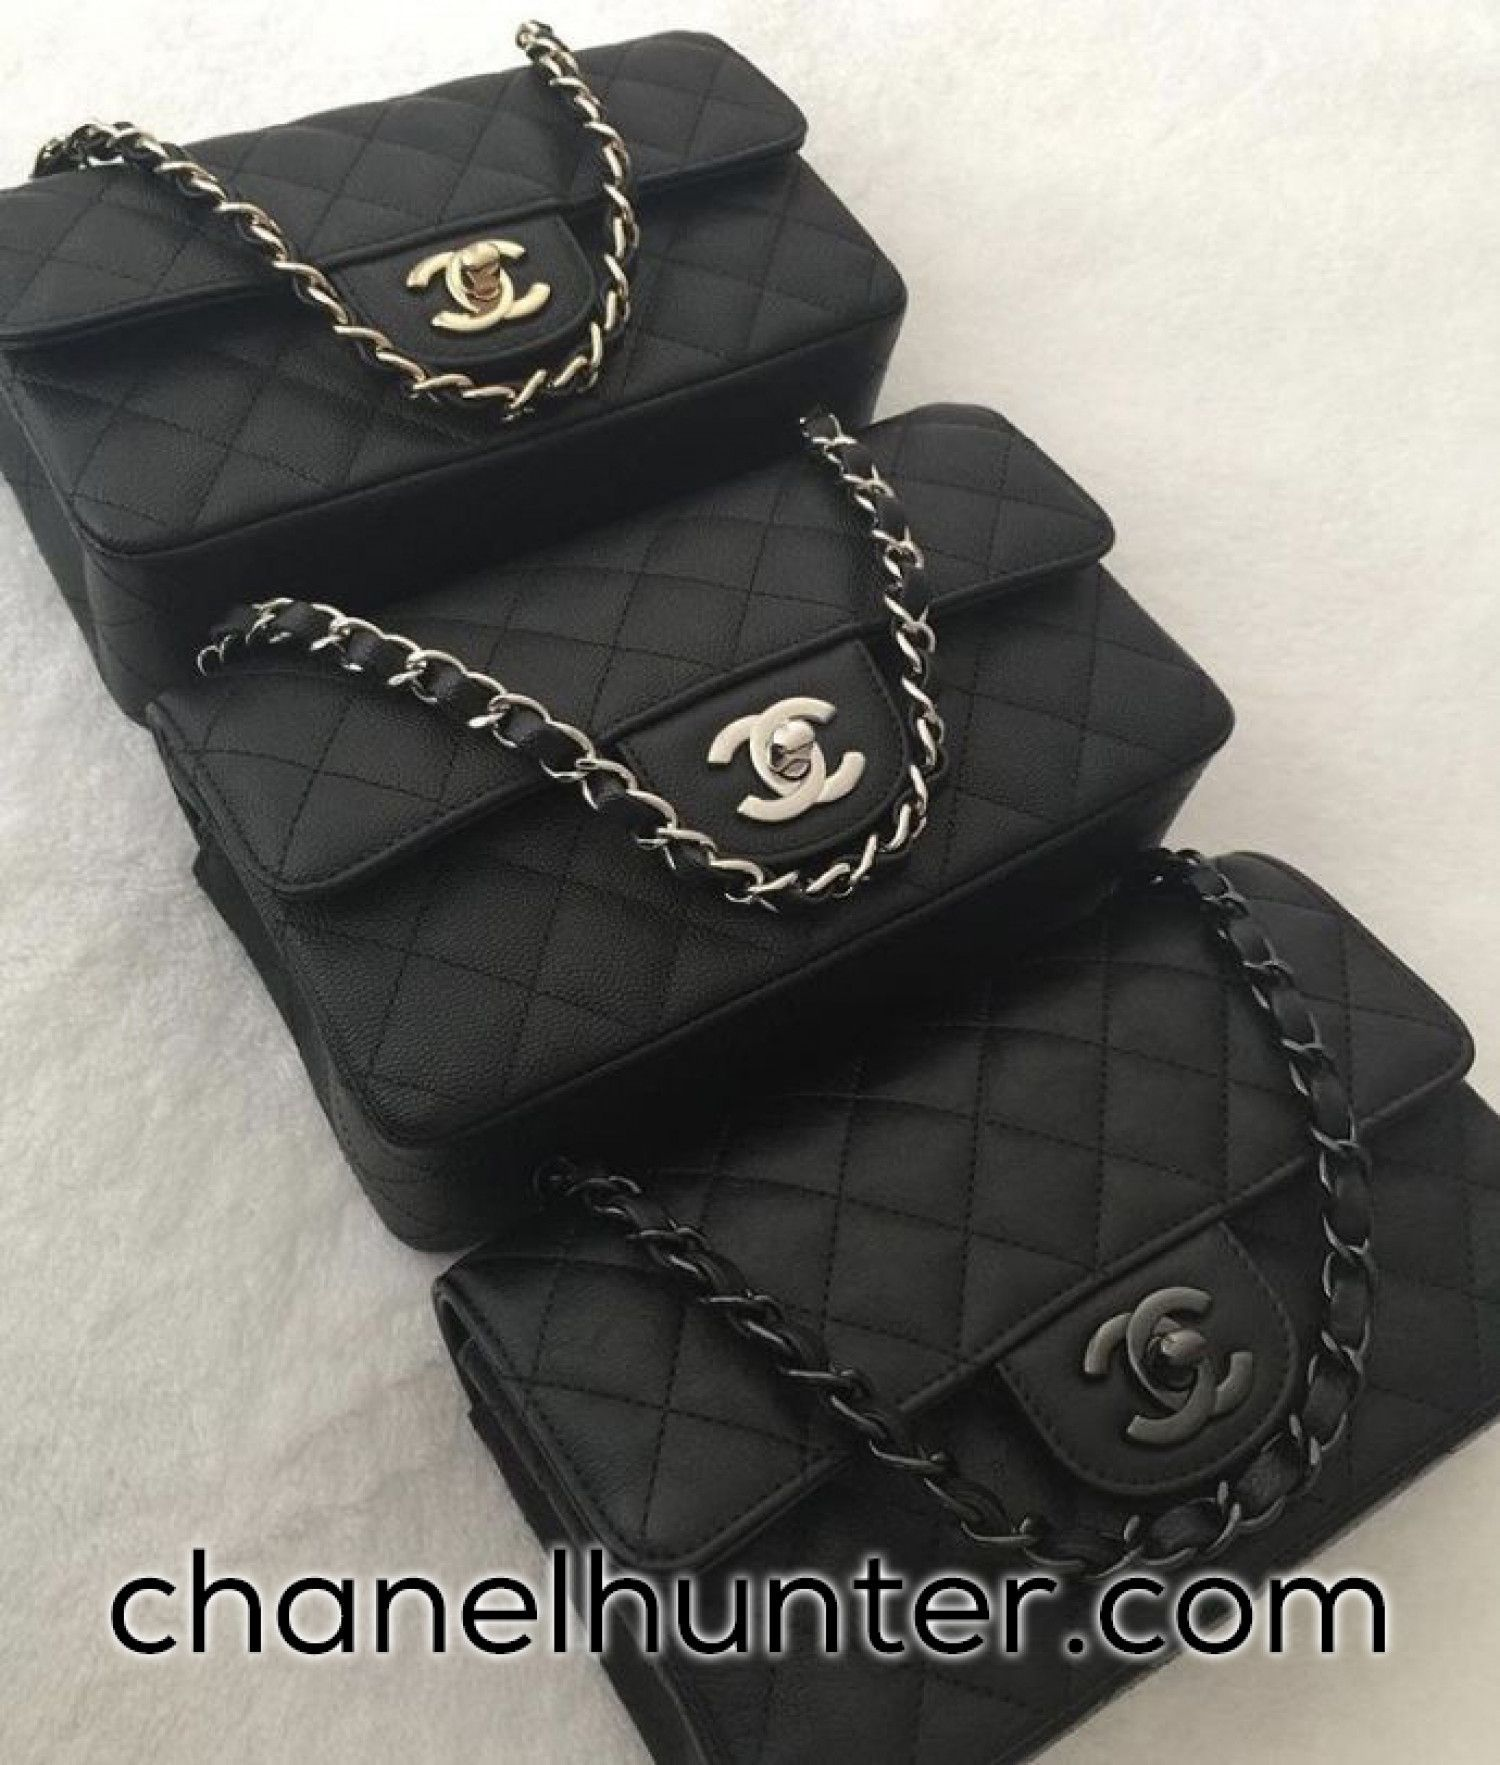 52d8ae99f5f Buy The Best Chanel Replica Bags Online and Other Chanel Inspired ...